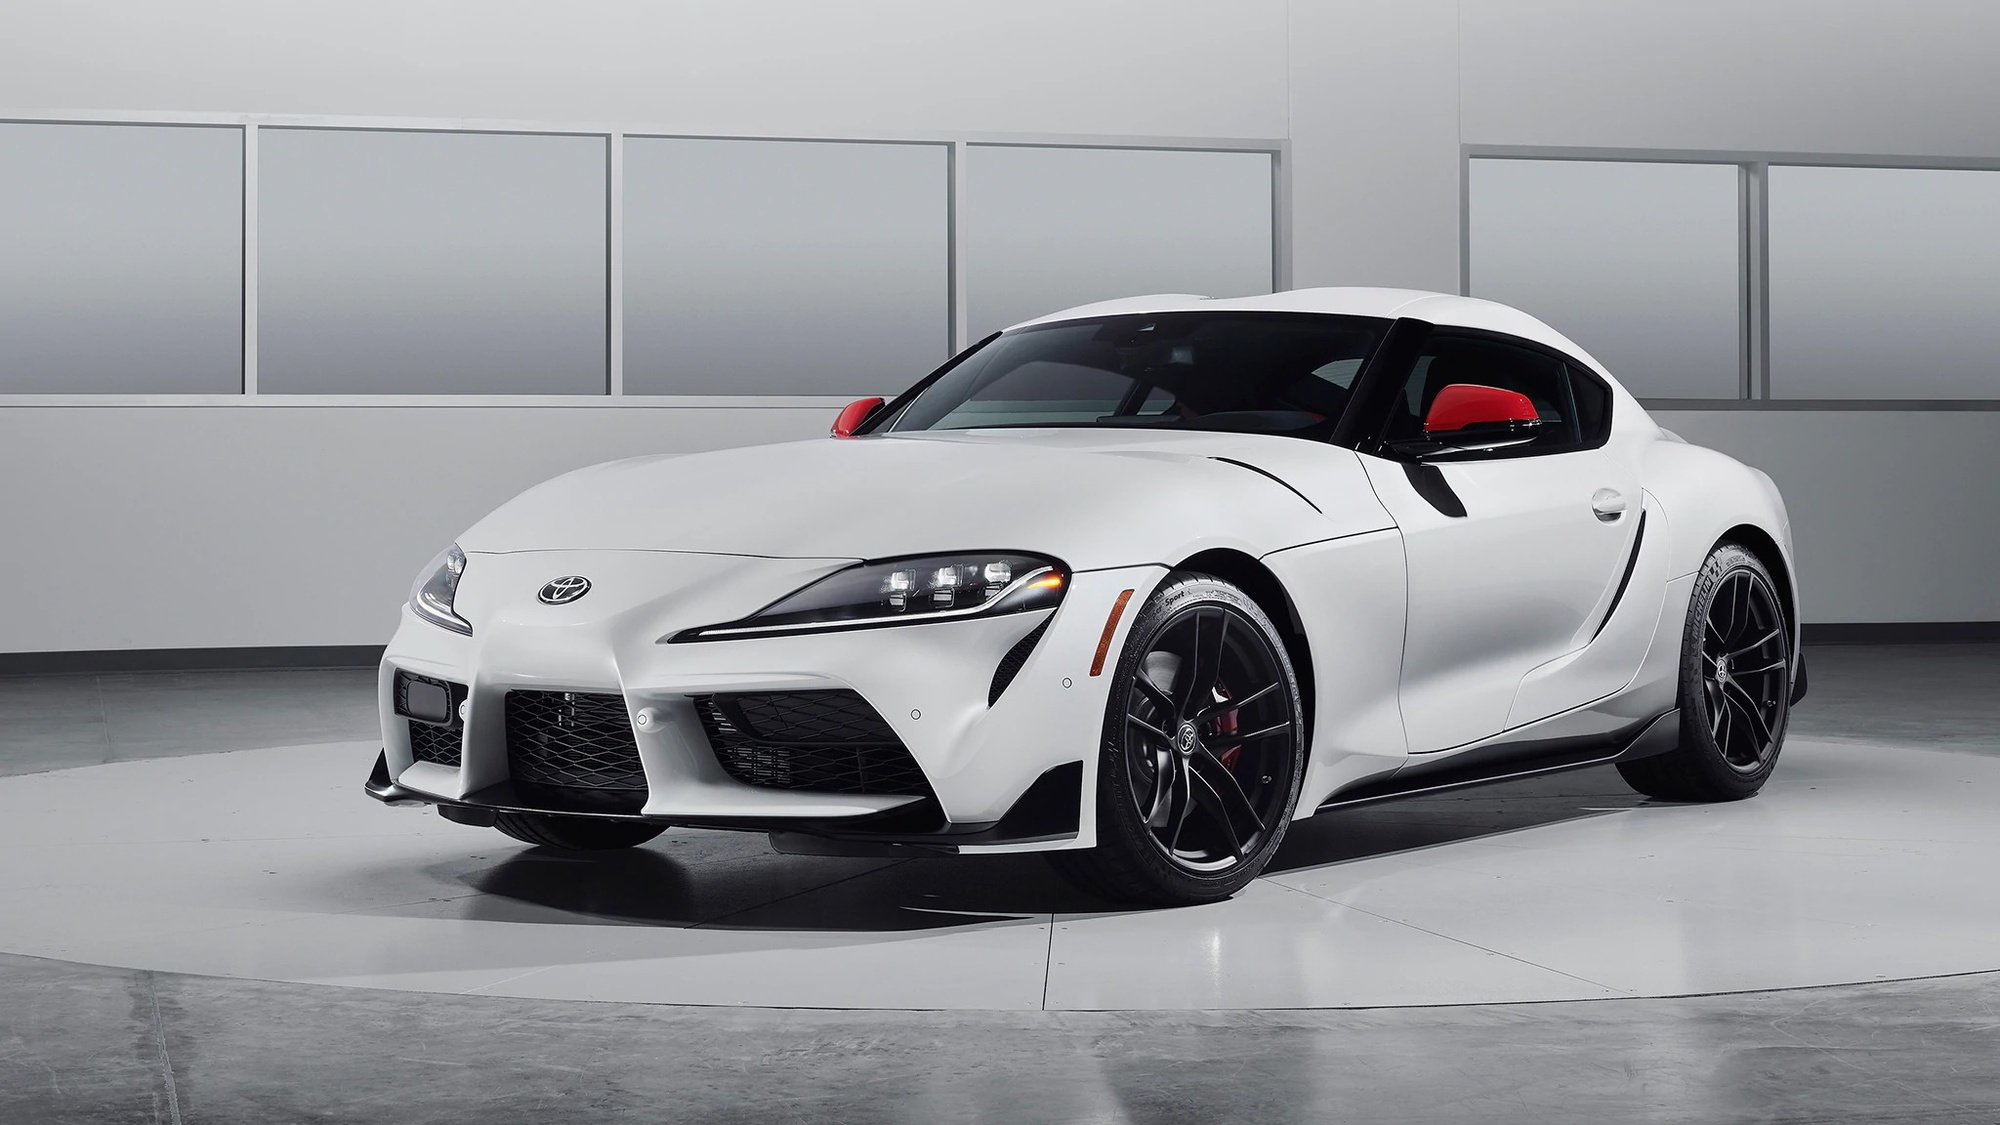 Toyota had originally intended to offer the four-cylinder engine version of its A90 Supra exclusively in Japan, but market demand made it change its mind. The entry-level Supra will launch in Europe in March 2020.